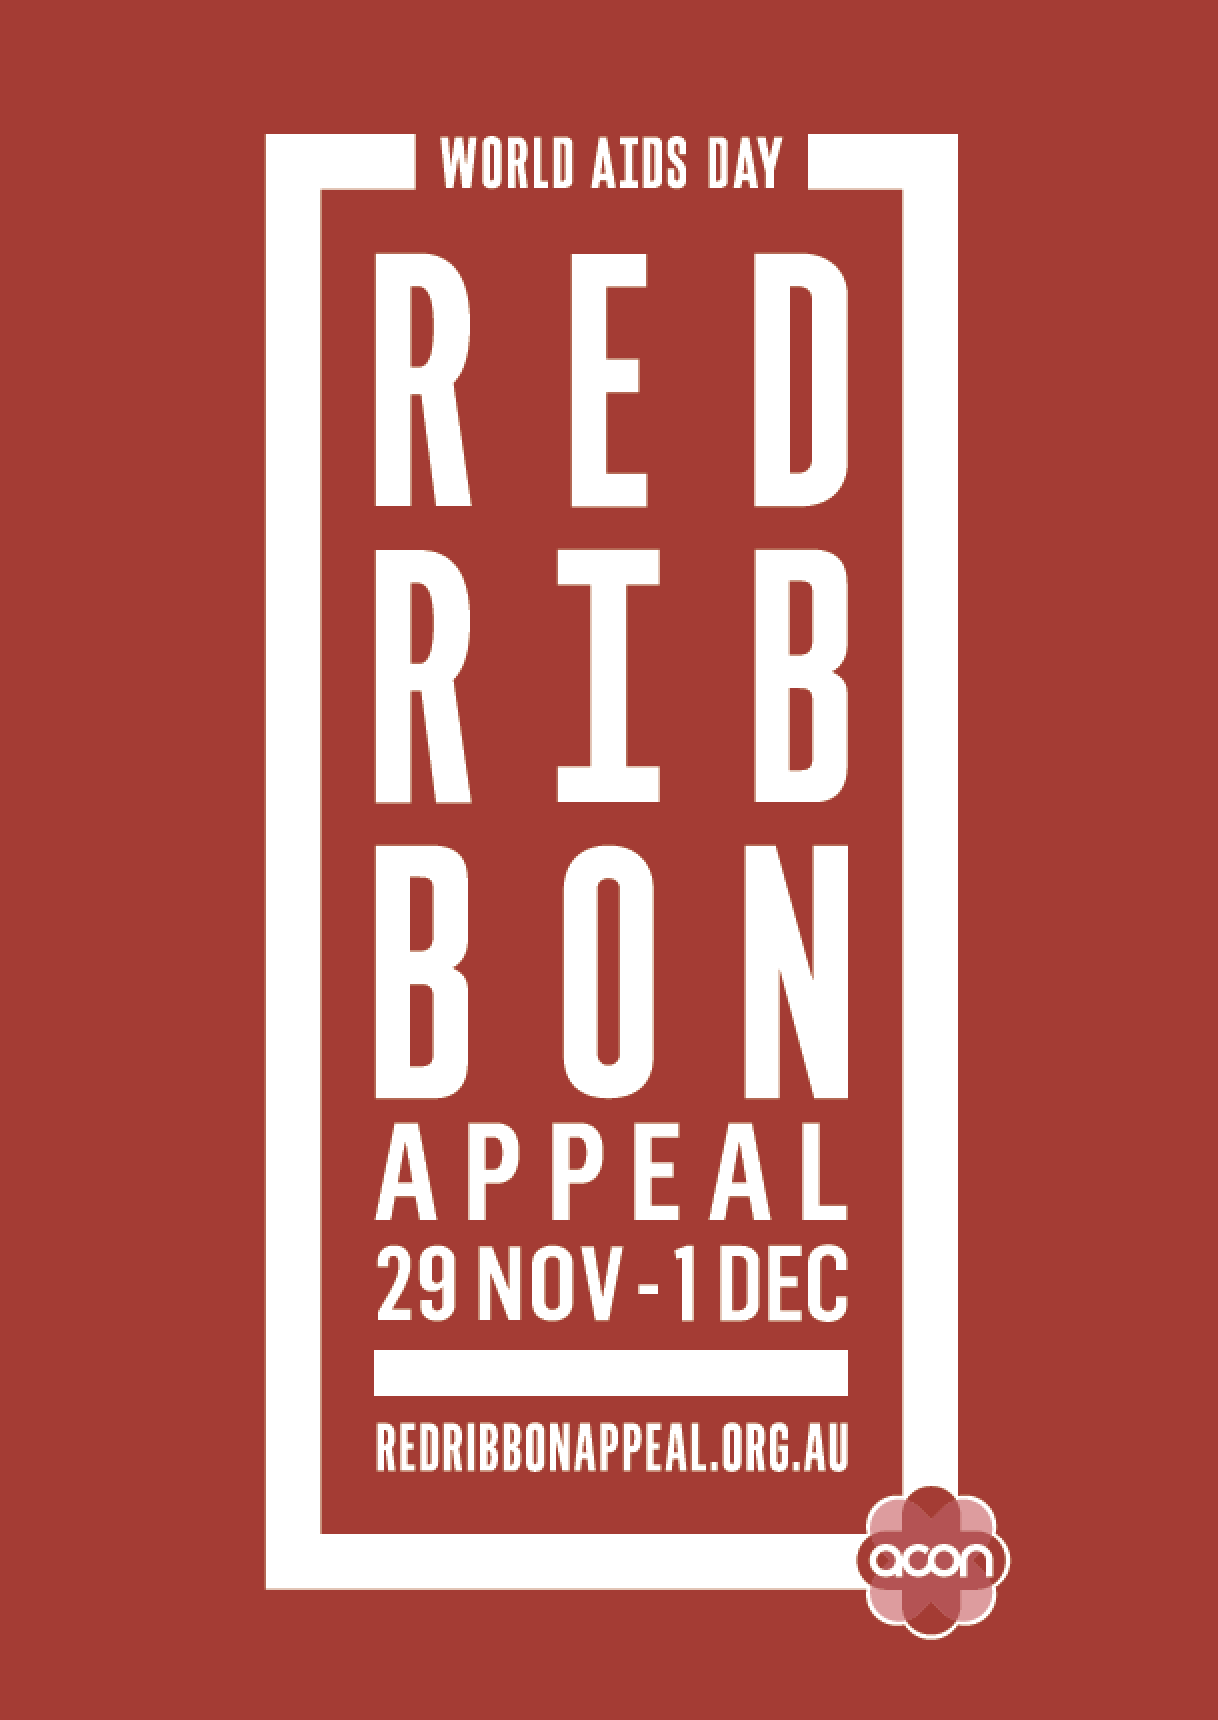 Red Friday - Poster 'Red Ribbon' (PDF)